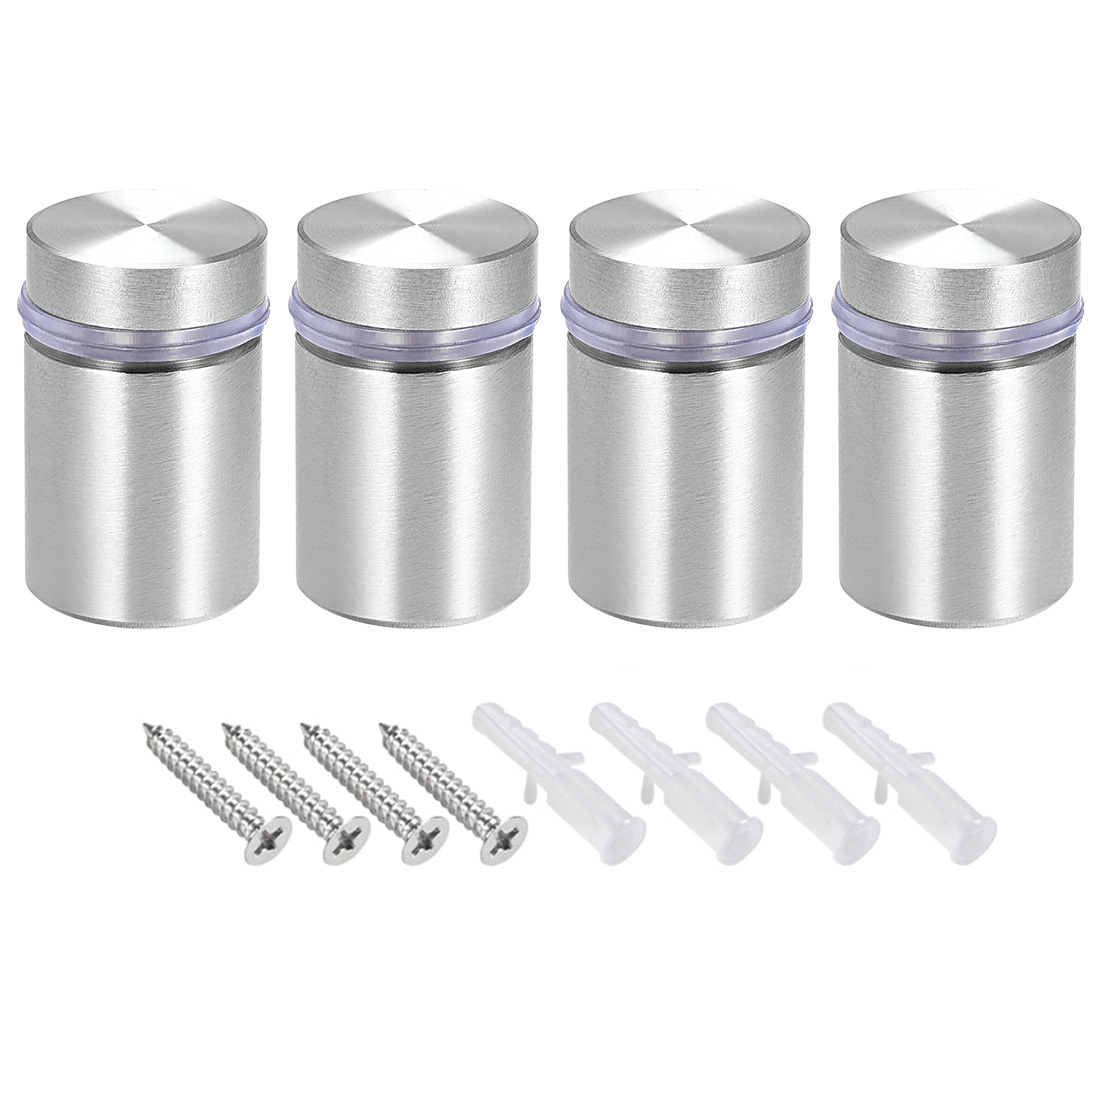 Glass Standoff Mount Solid Stainless Steel Wall Standoff Holder 18mmx28mm 4 Pcs